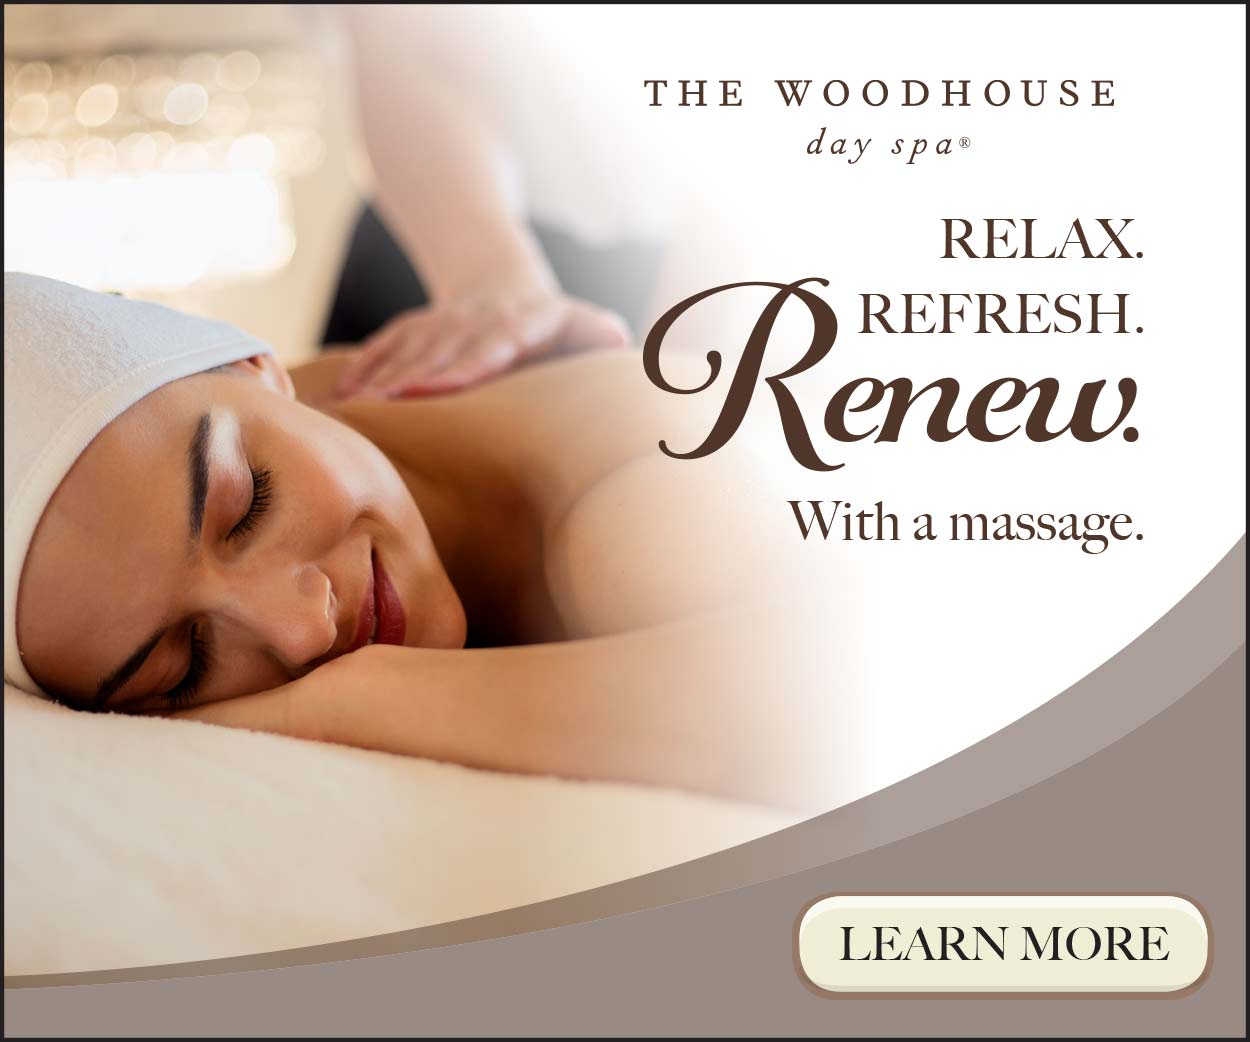 Woodhouse Day Spa digital advertisement